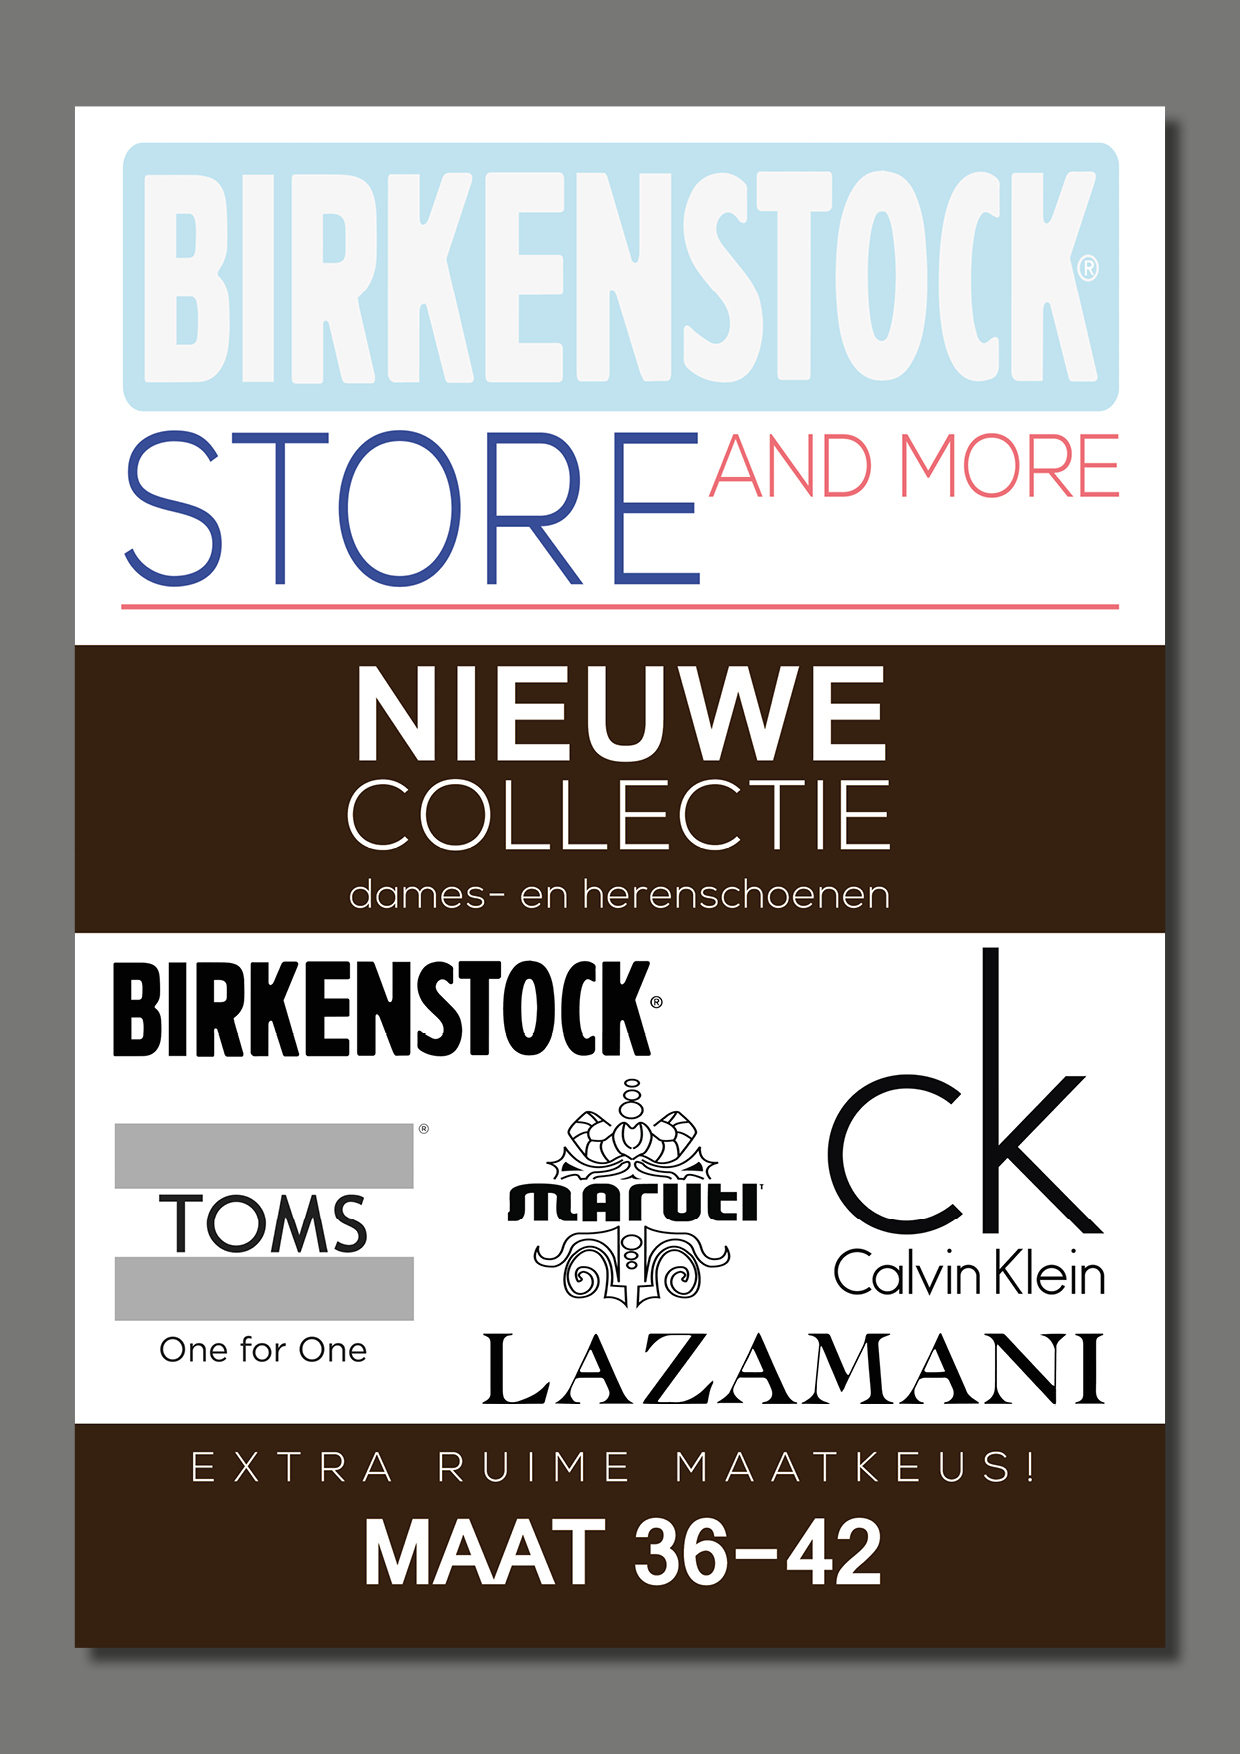 A1 Stoepbord poster - Birkenstockstore And More